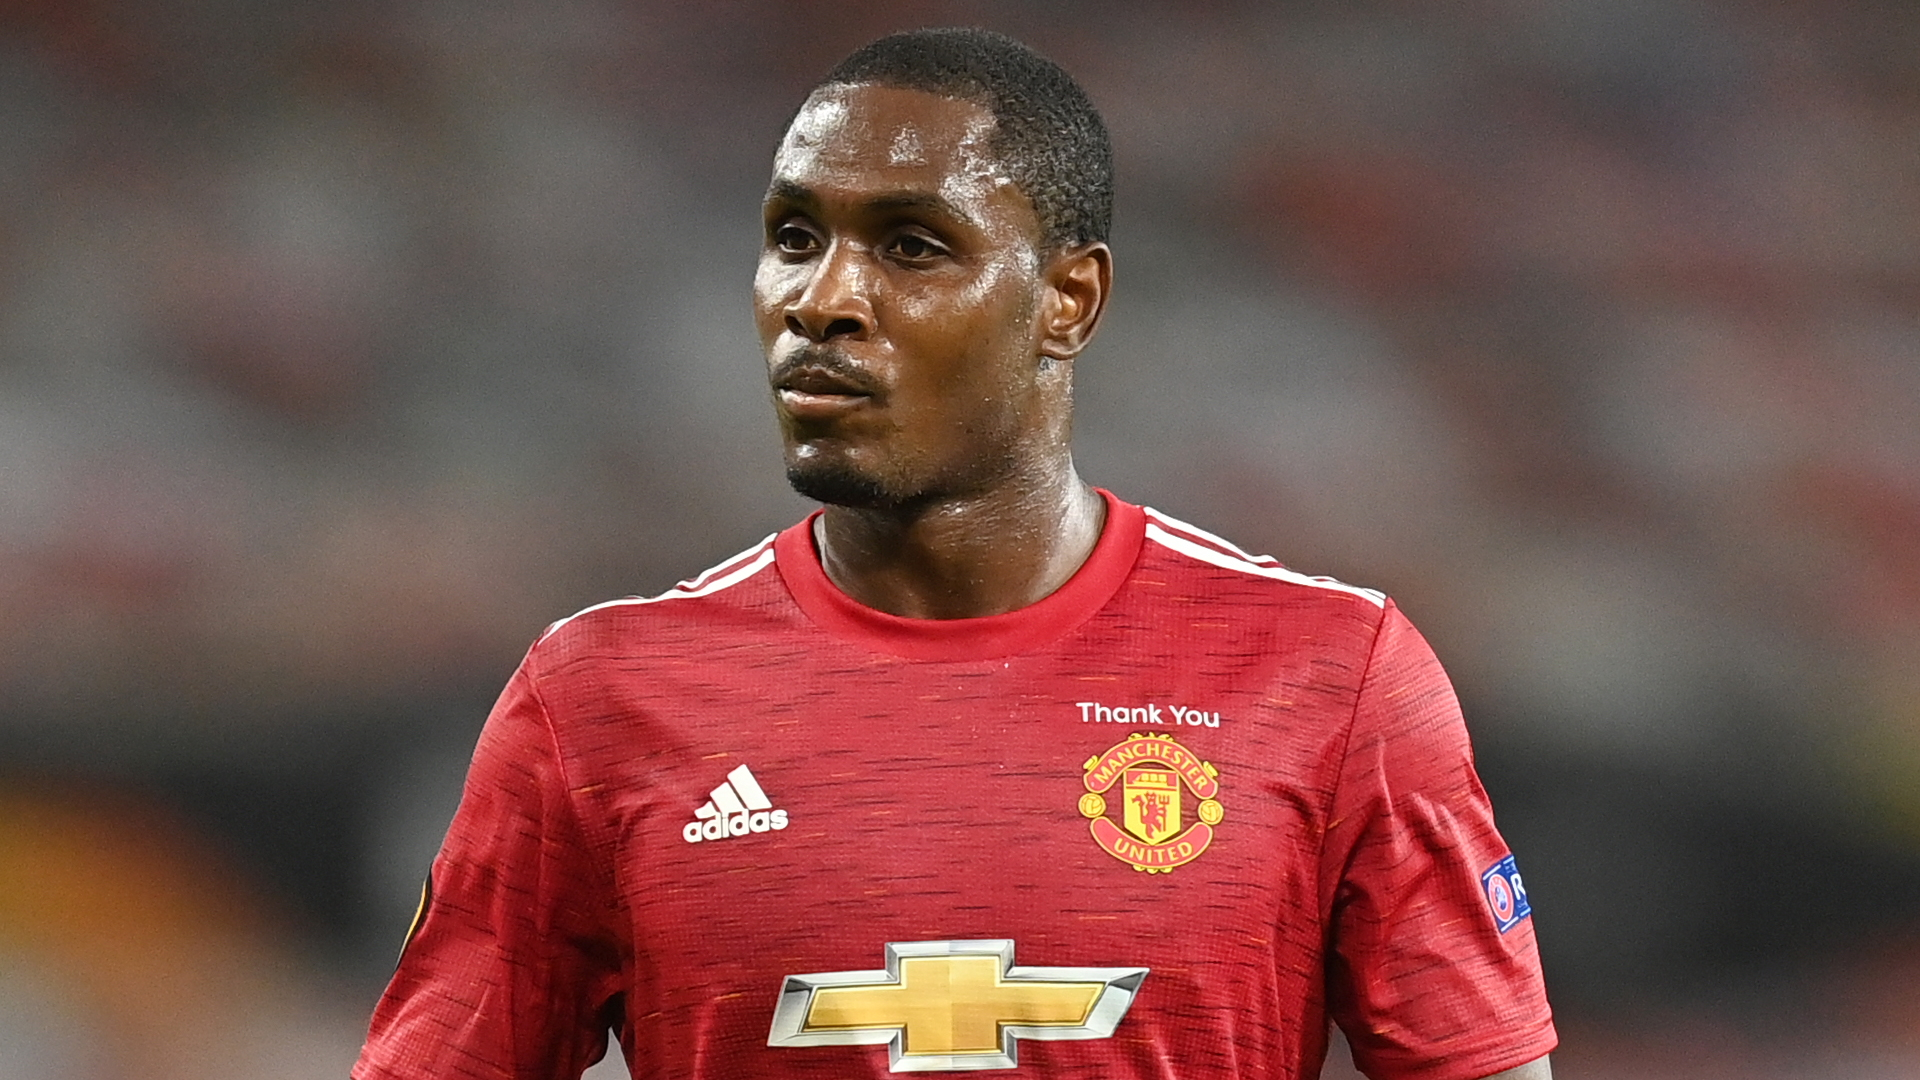 'An honor I will forever cherish' - Ighalo bids farewell to Manchester United